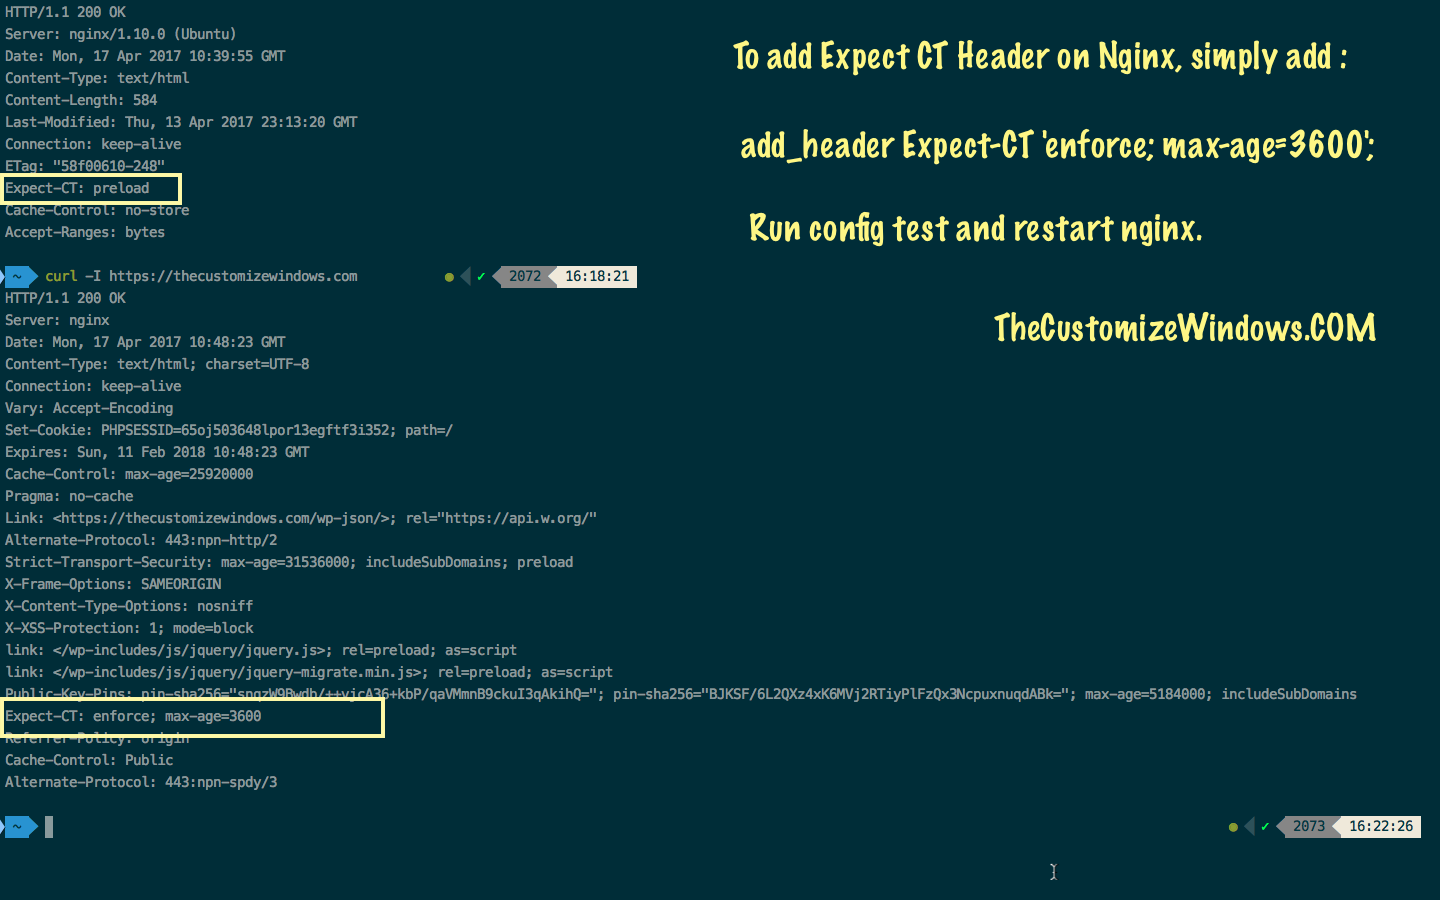 New Security Header - Expect CT Header Nginx Directive